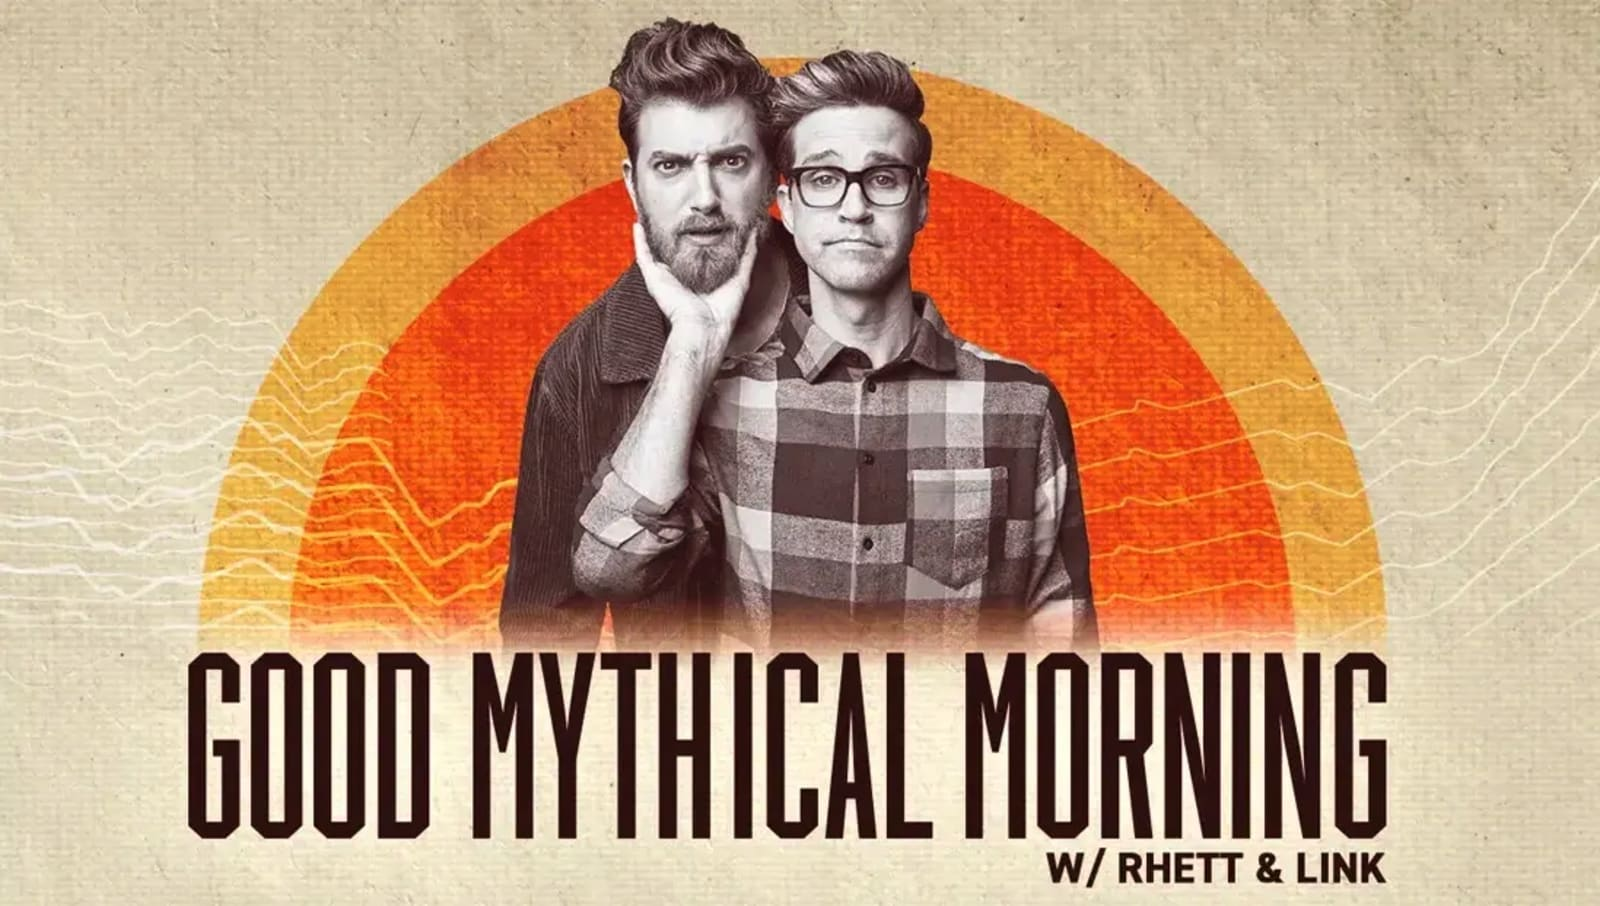 Good Mythical Morning how engadget staffers are finding solace during the coronavirus crisis - a3ff29c0 6d19 11ea bbdf 50bcb91902f5 client a1acac3e1b3290917d92 signature 2781da29c9d0812ff4eafc793792124bd65a0e72 - How Engadget staffers are finding solace during the coronavirus crisis how engadget staffers are finding solace during the coronavirus crisis - a3ff29c0 6d19 11ea bbdf 50bcb91902f5 client a1acac3e1b3290917d92 signature 2781da29c9d0812ff4eafc793792124bd65a0e72 - How Engadget staffers are finding solace during the coronavirus crisis